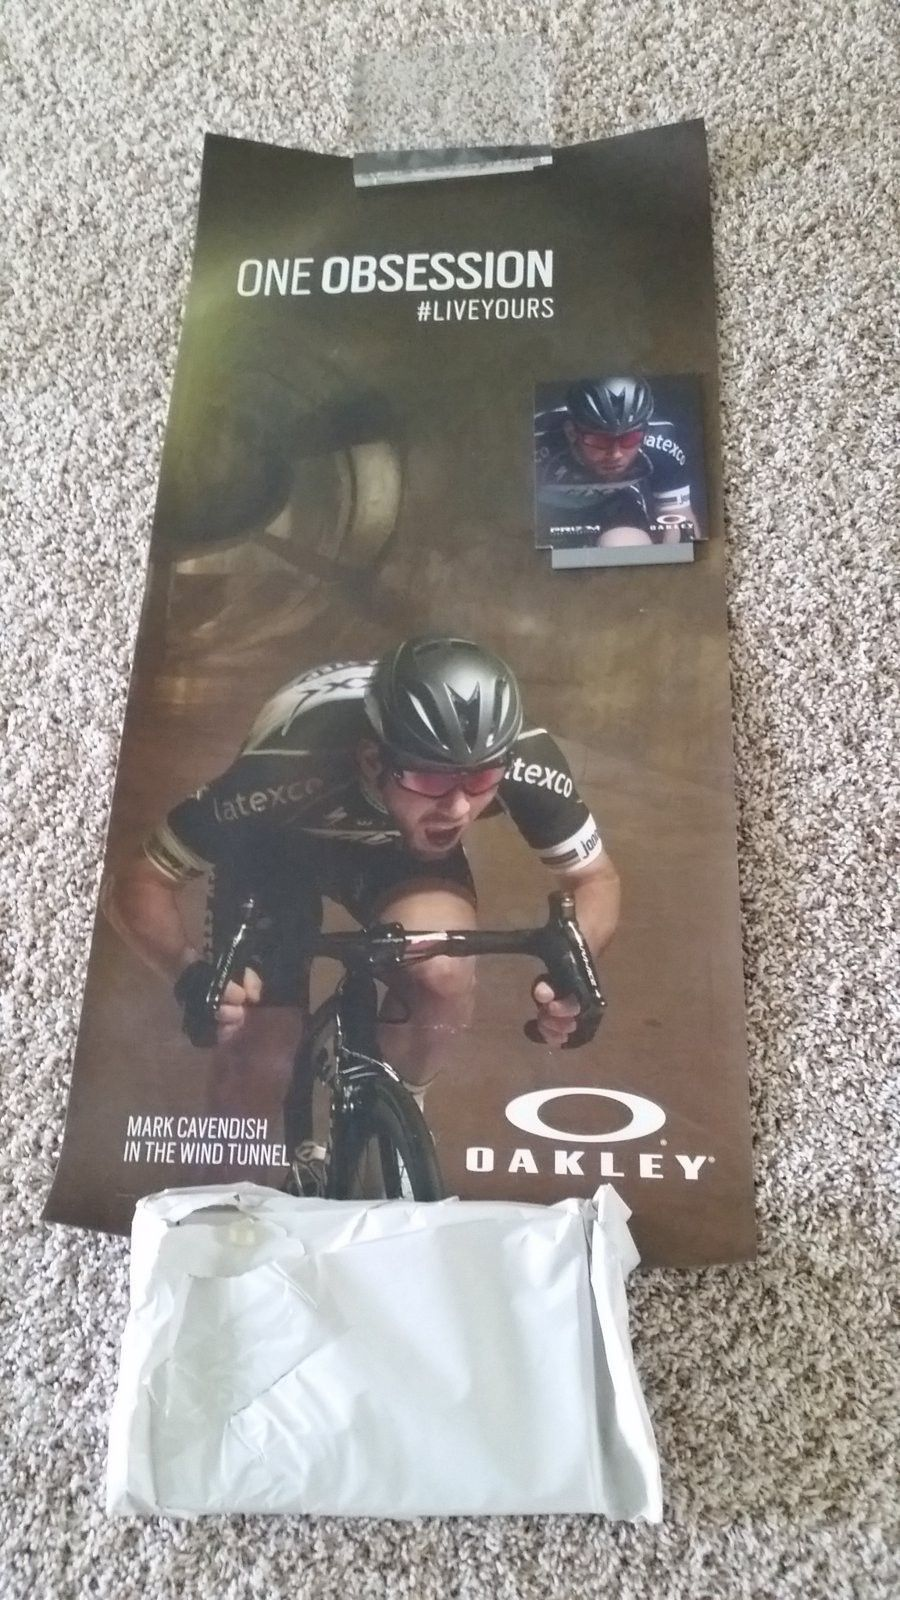 Mark Cavendish poster - 20160807_120451.jpg